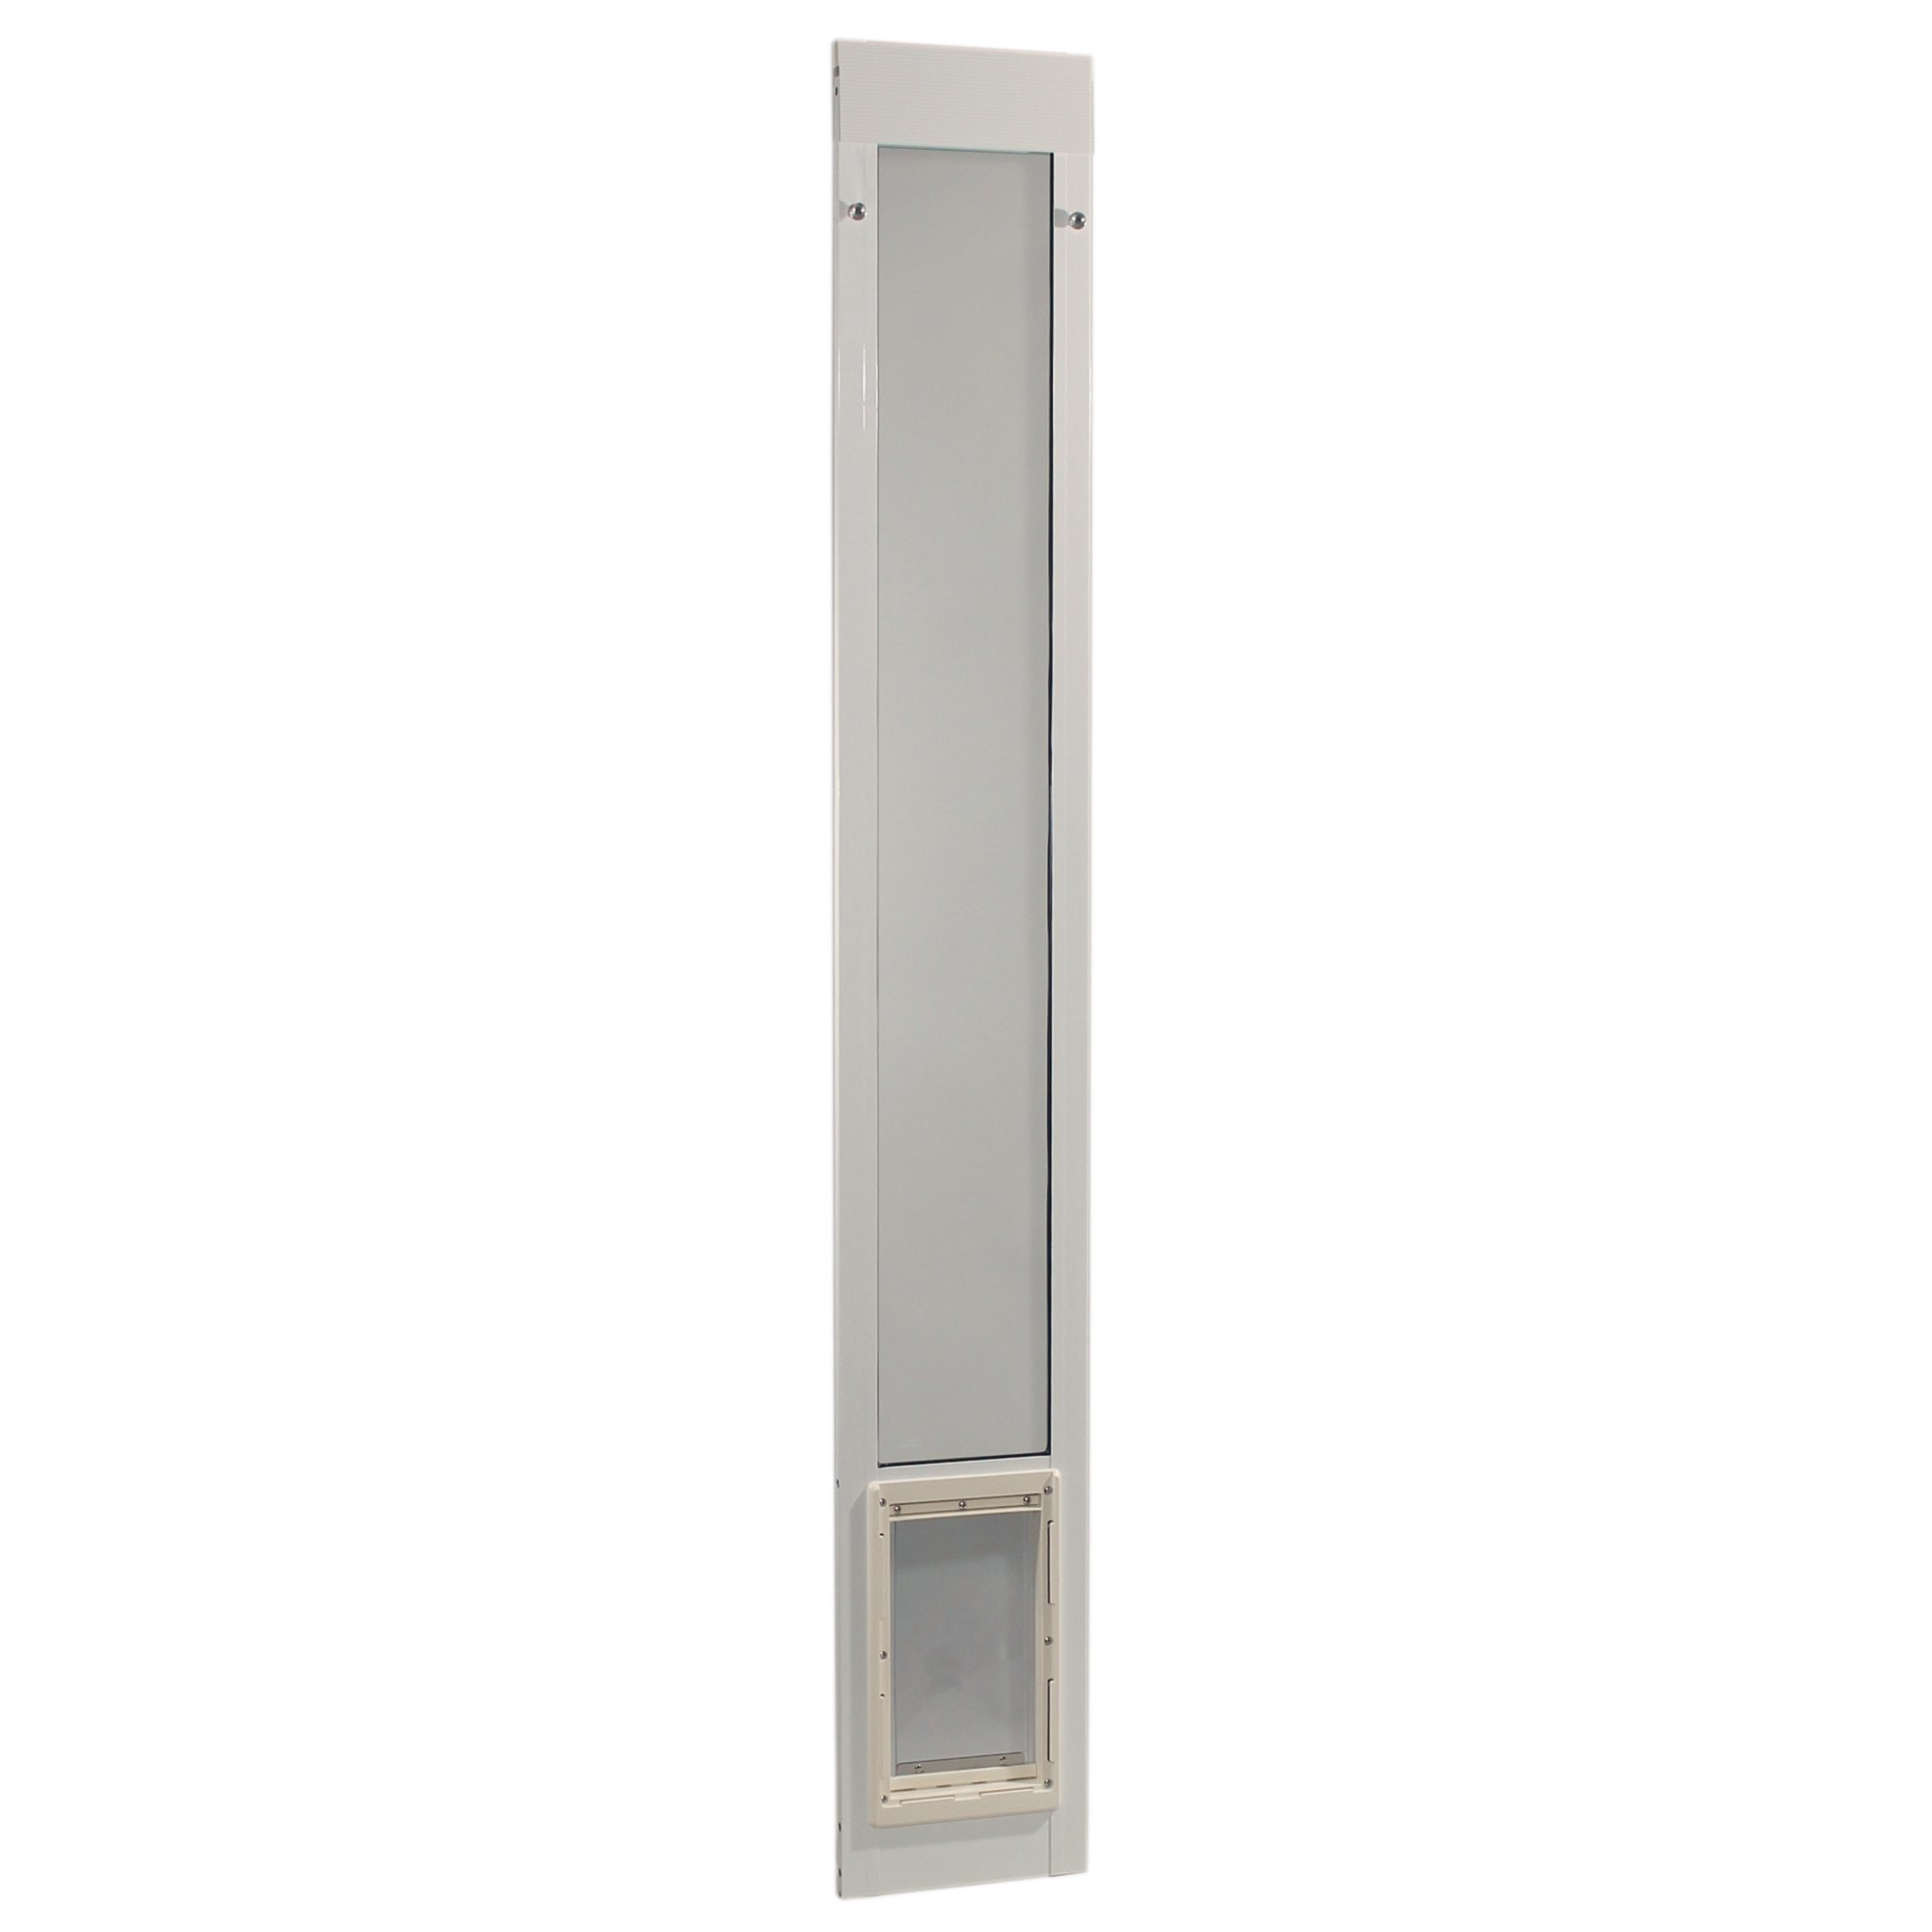 Ideal Pet Products 80'' Fast Fit Aluminum Pet Patio Door, Medium, 7'' x 11.25'' Flap Size, White